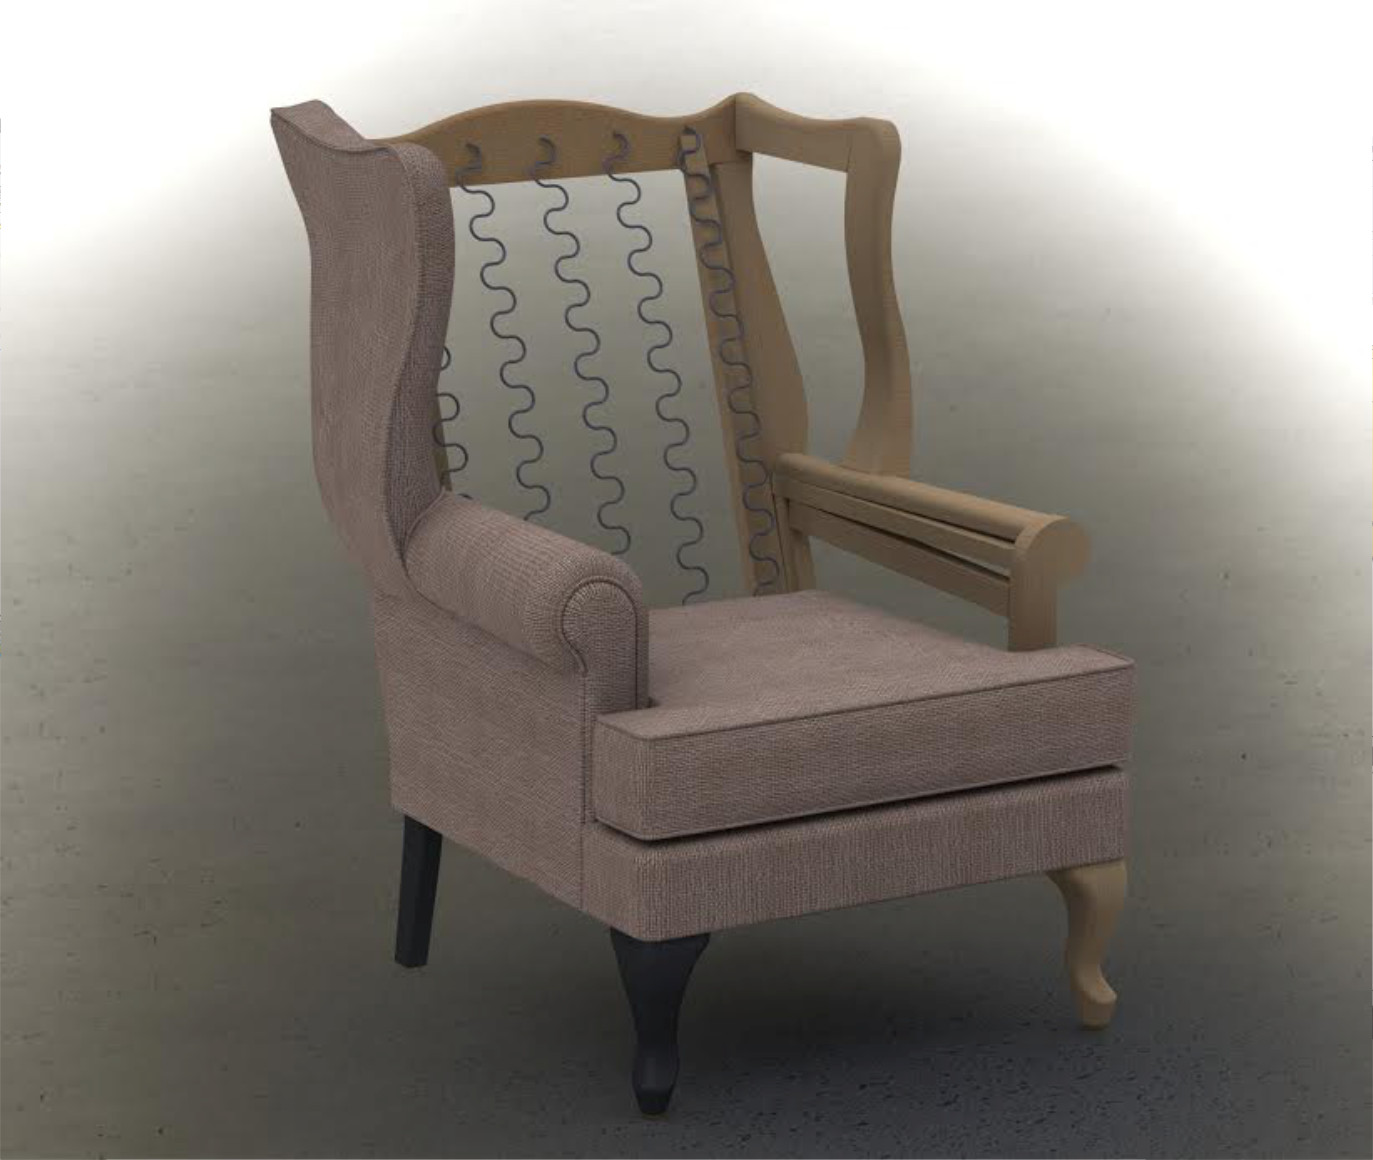 Digital Models allow for simultaneous design validation of both the mechanical and fabric component of the chair